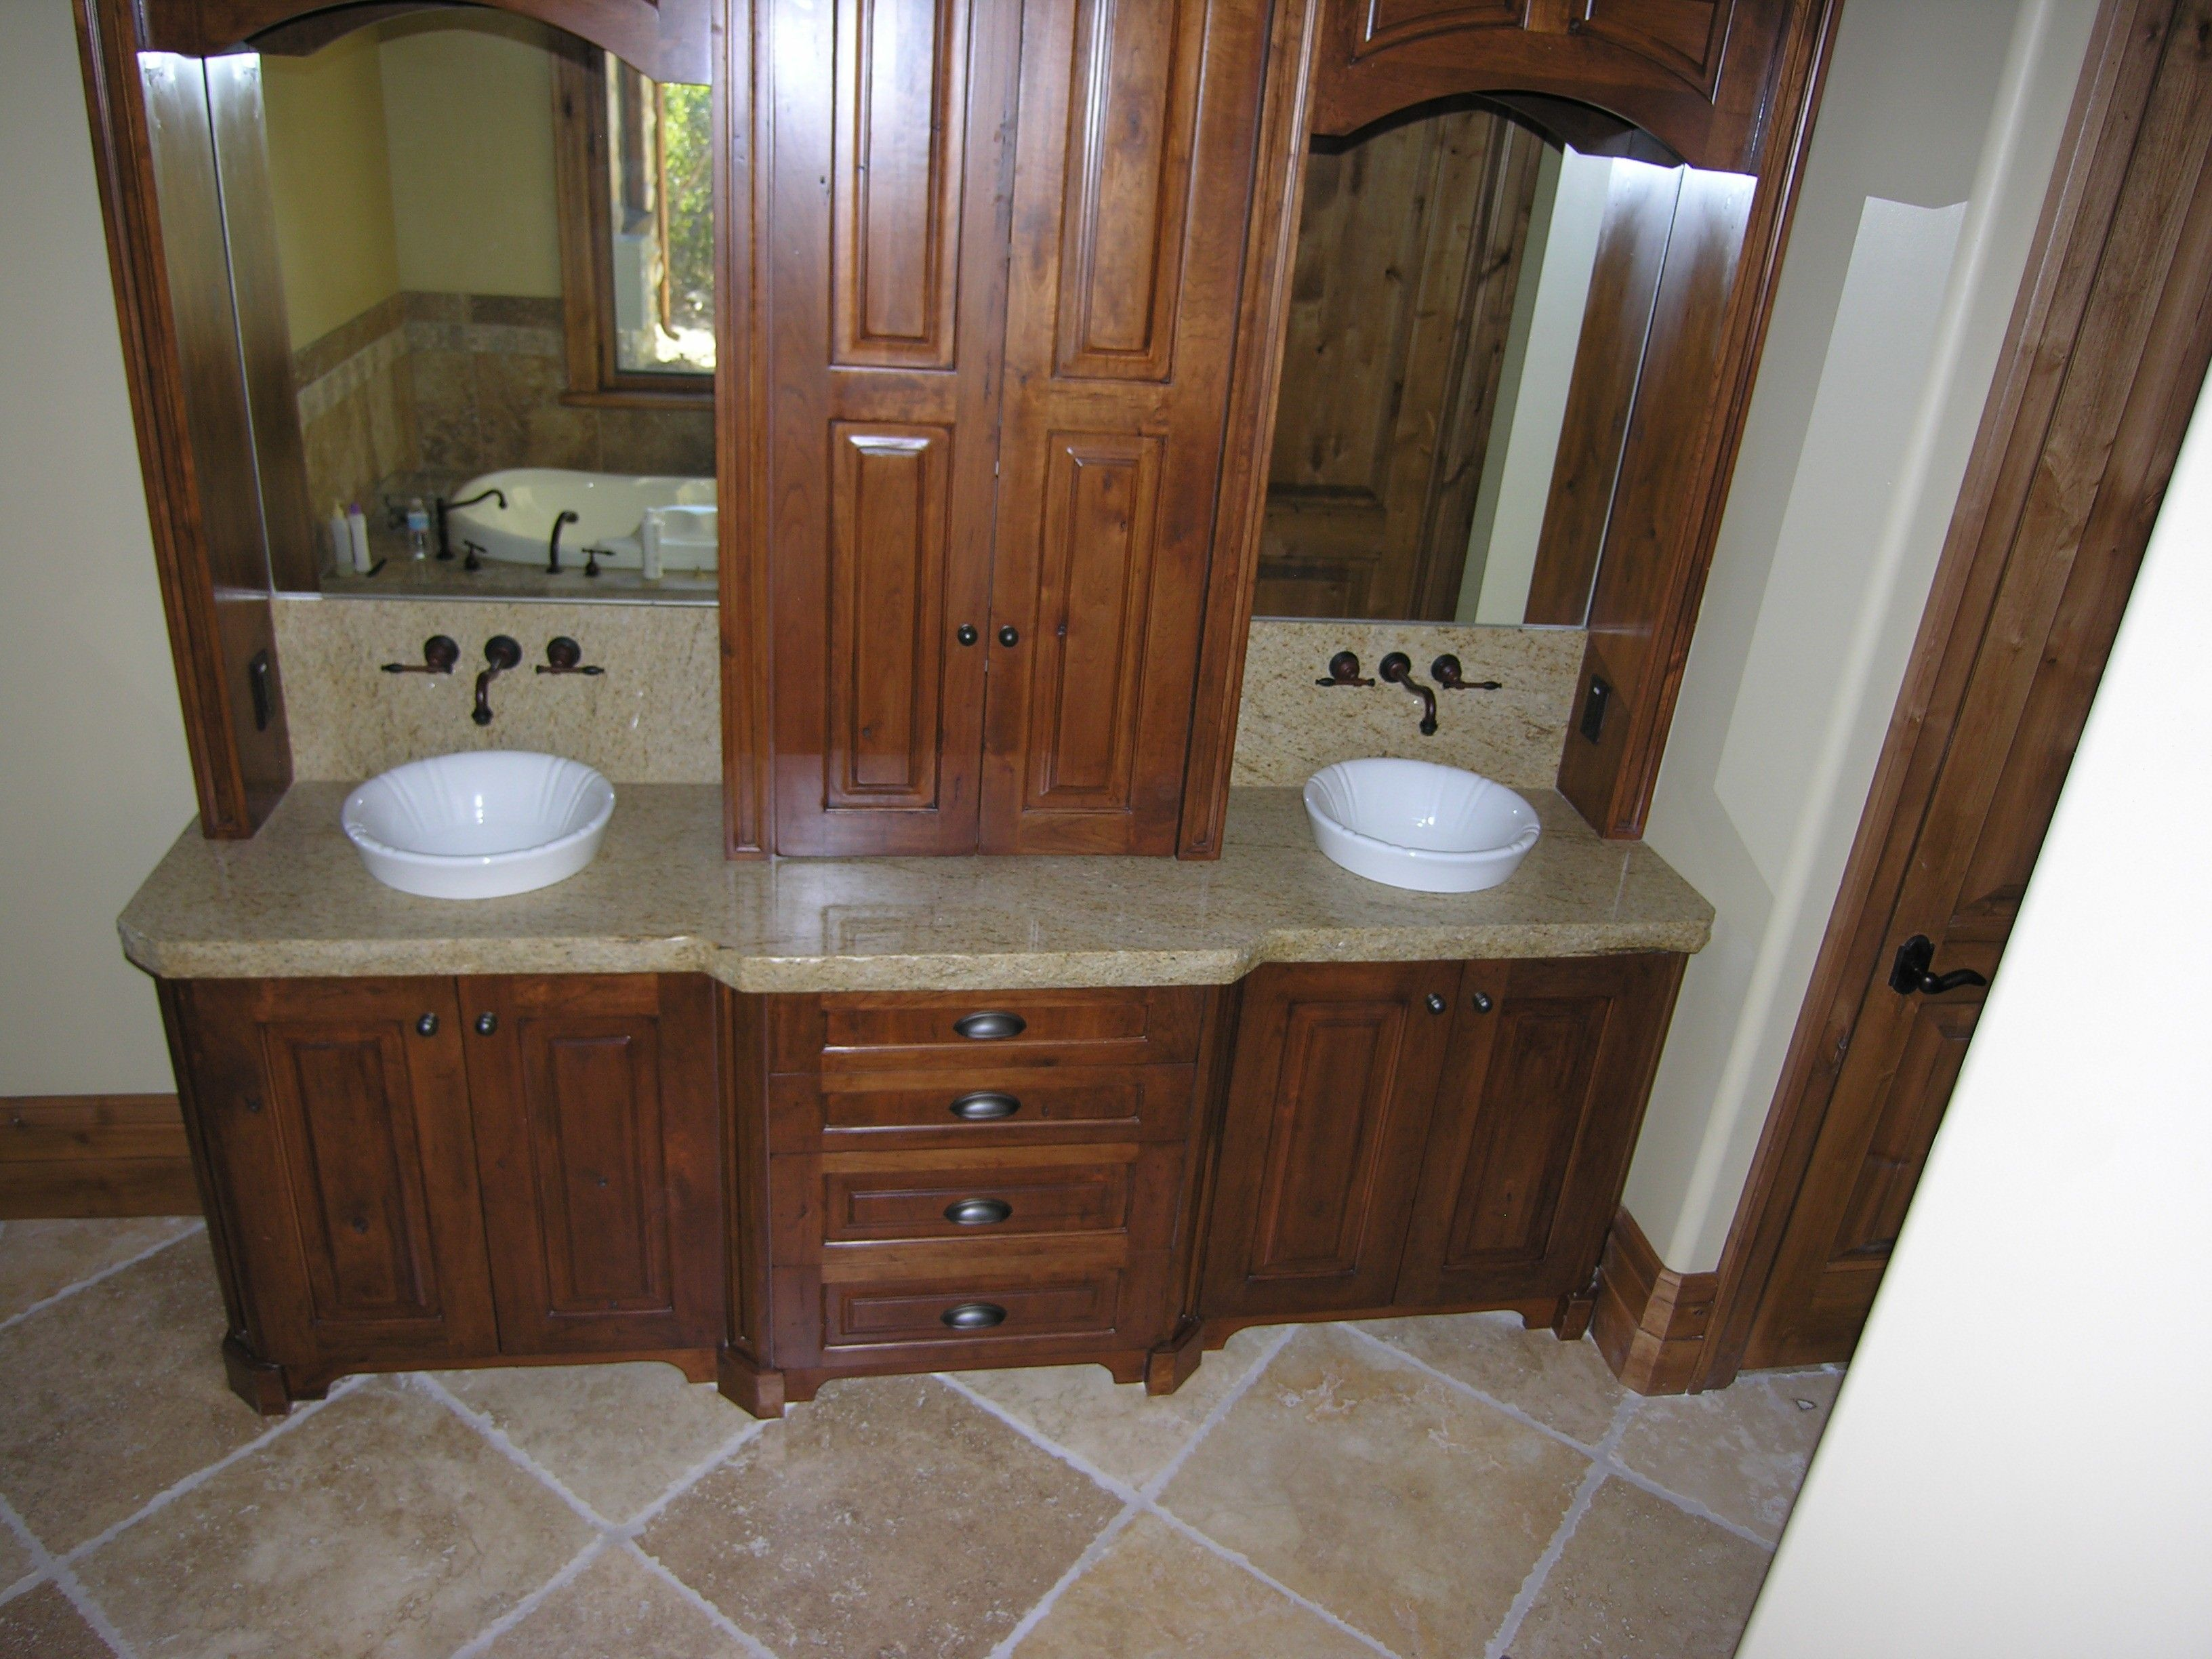 Charming Bathroom Vanities Without Tops For Bathroom Furniture Ideas: Brown  Wooden Bathroom Vanities Without Tops